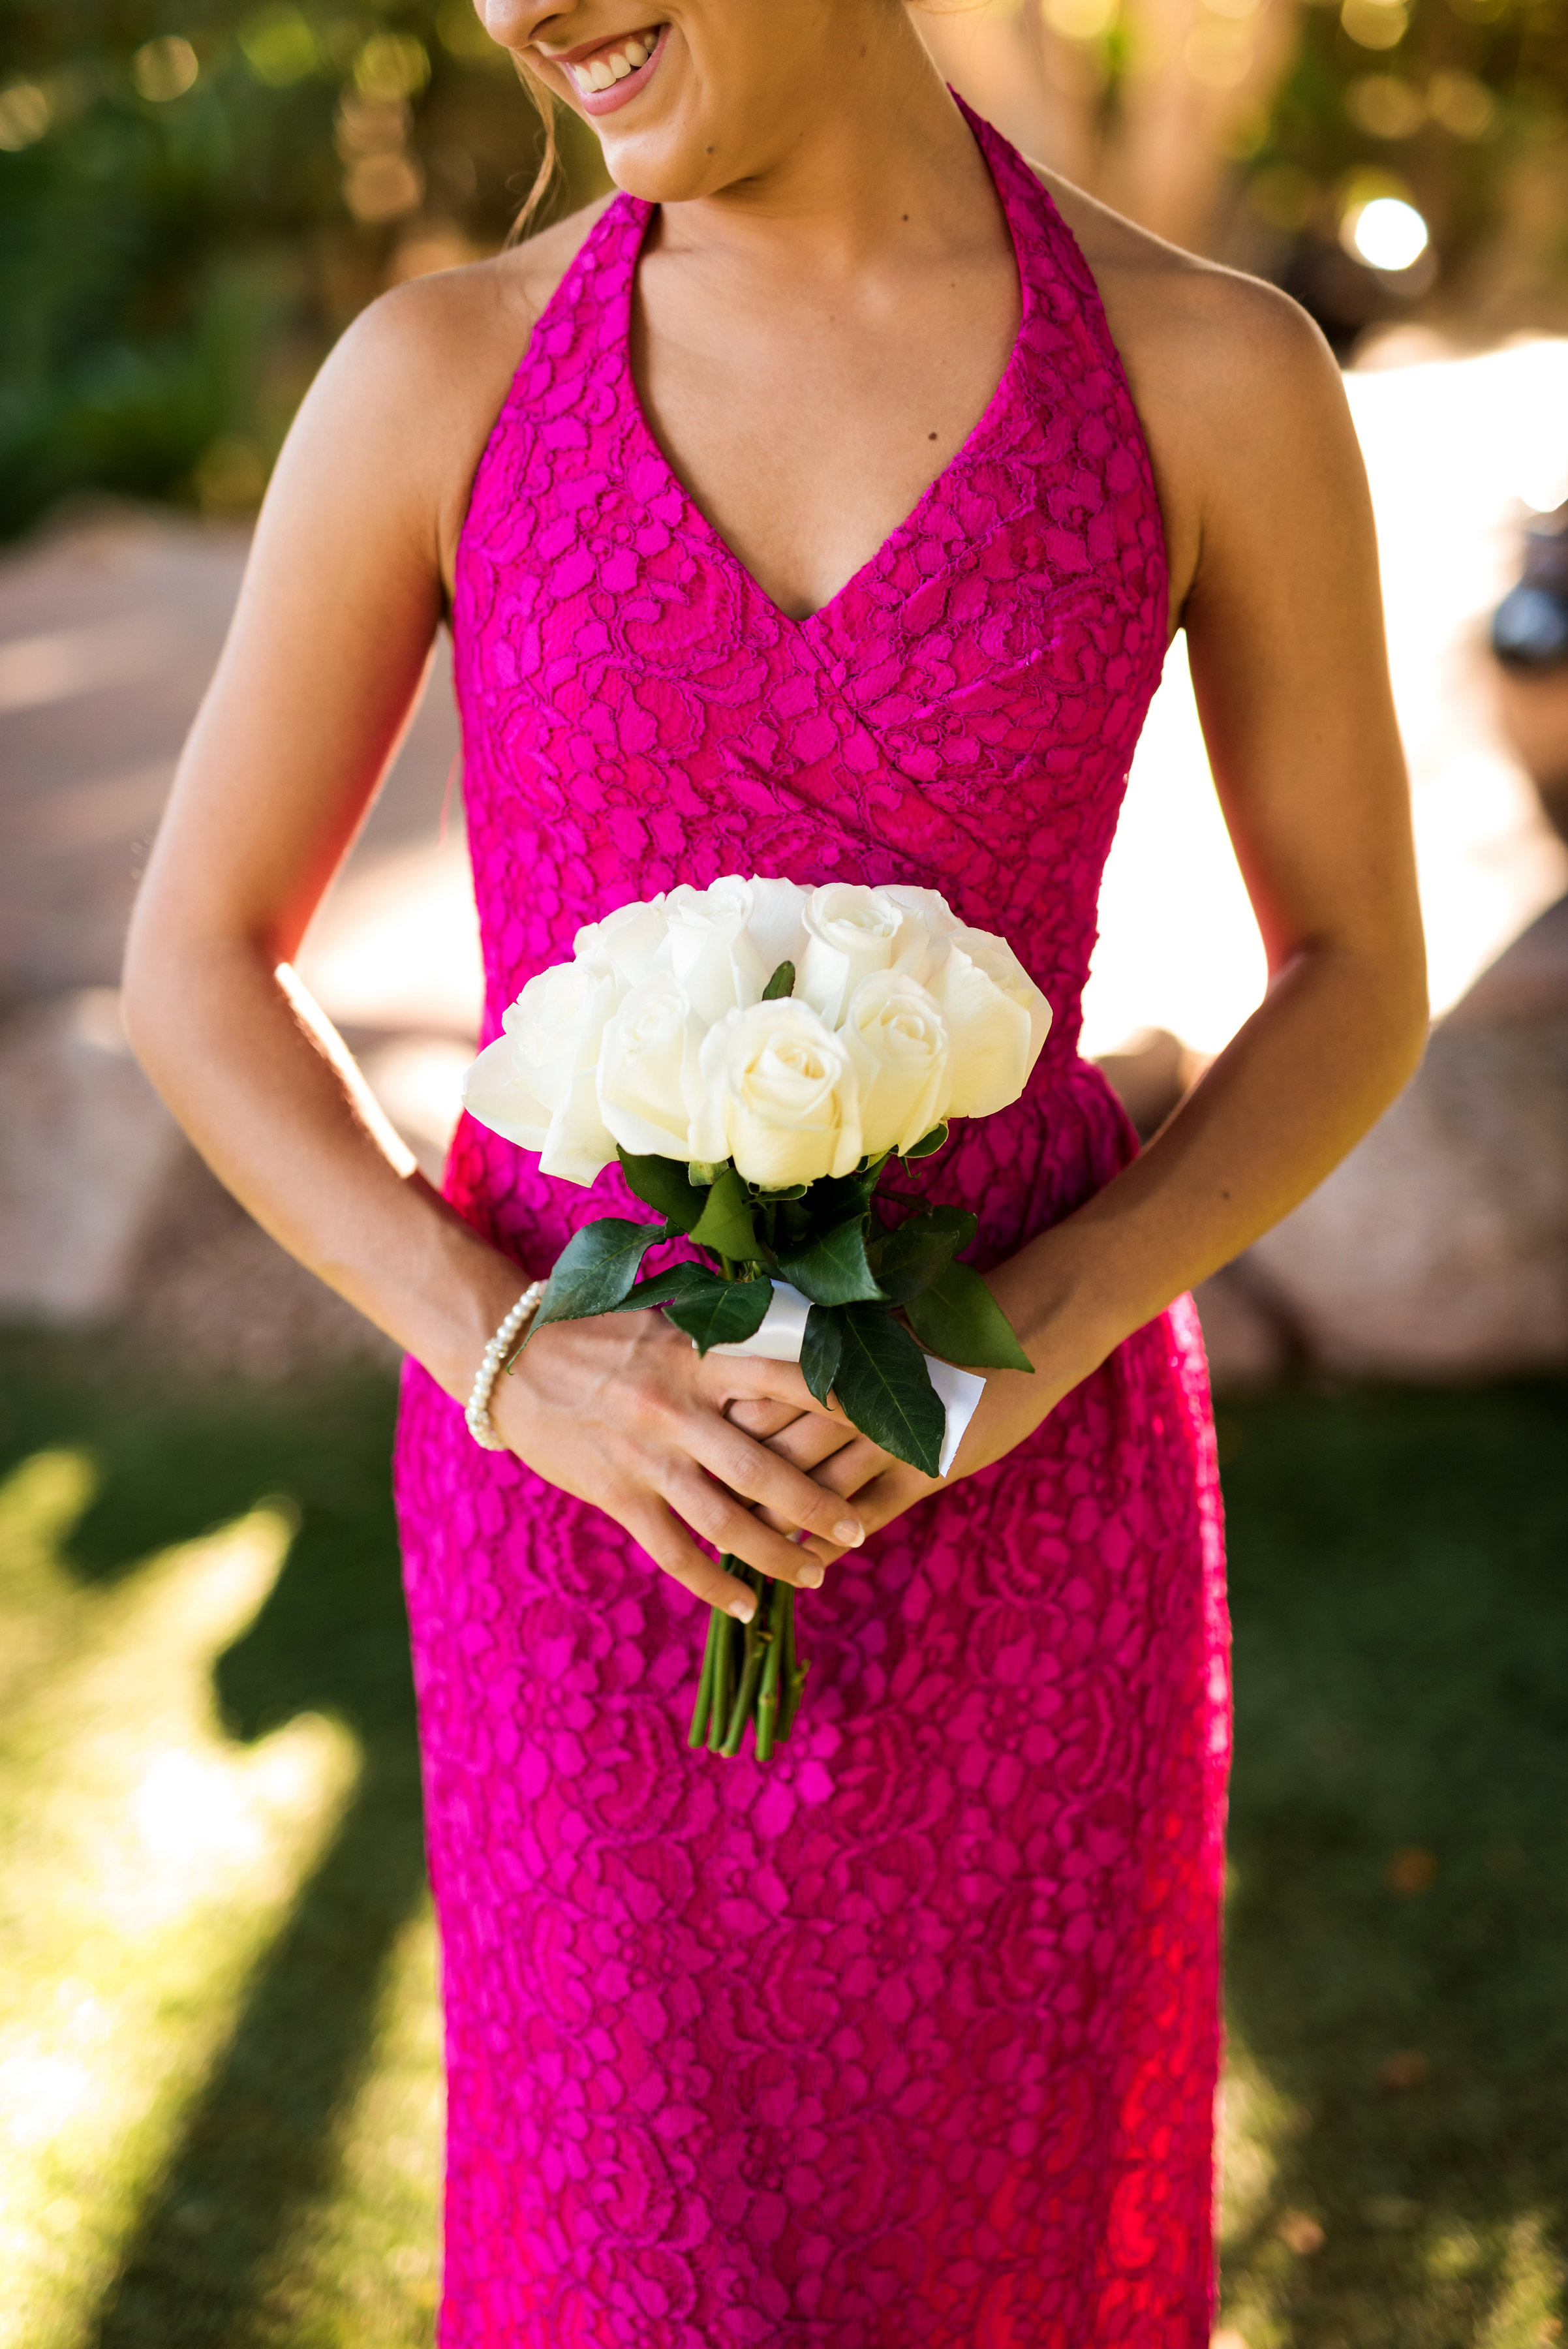 20161001-WeddingParty-55.JPG